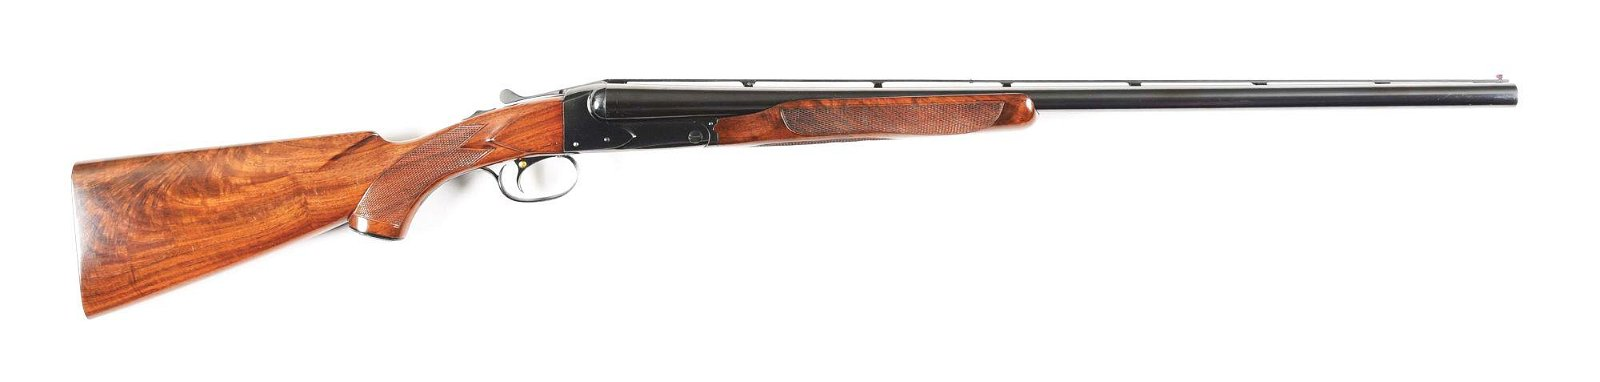 (C) WINCHESTER MODEL 21 12 GAUGE SIDE BY SIDE SHOTGUN.